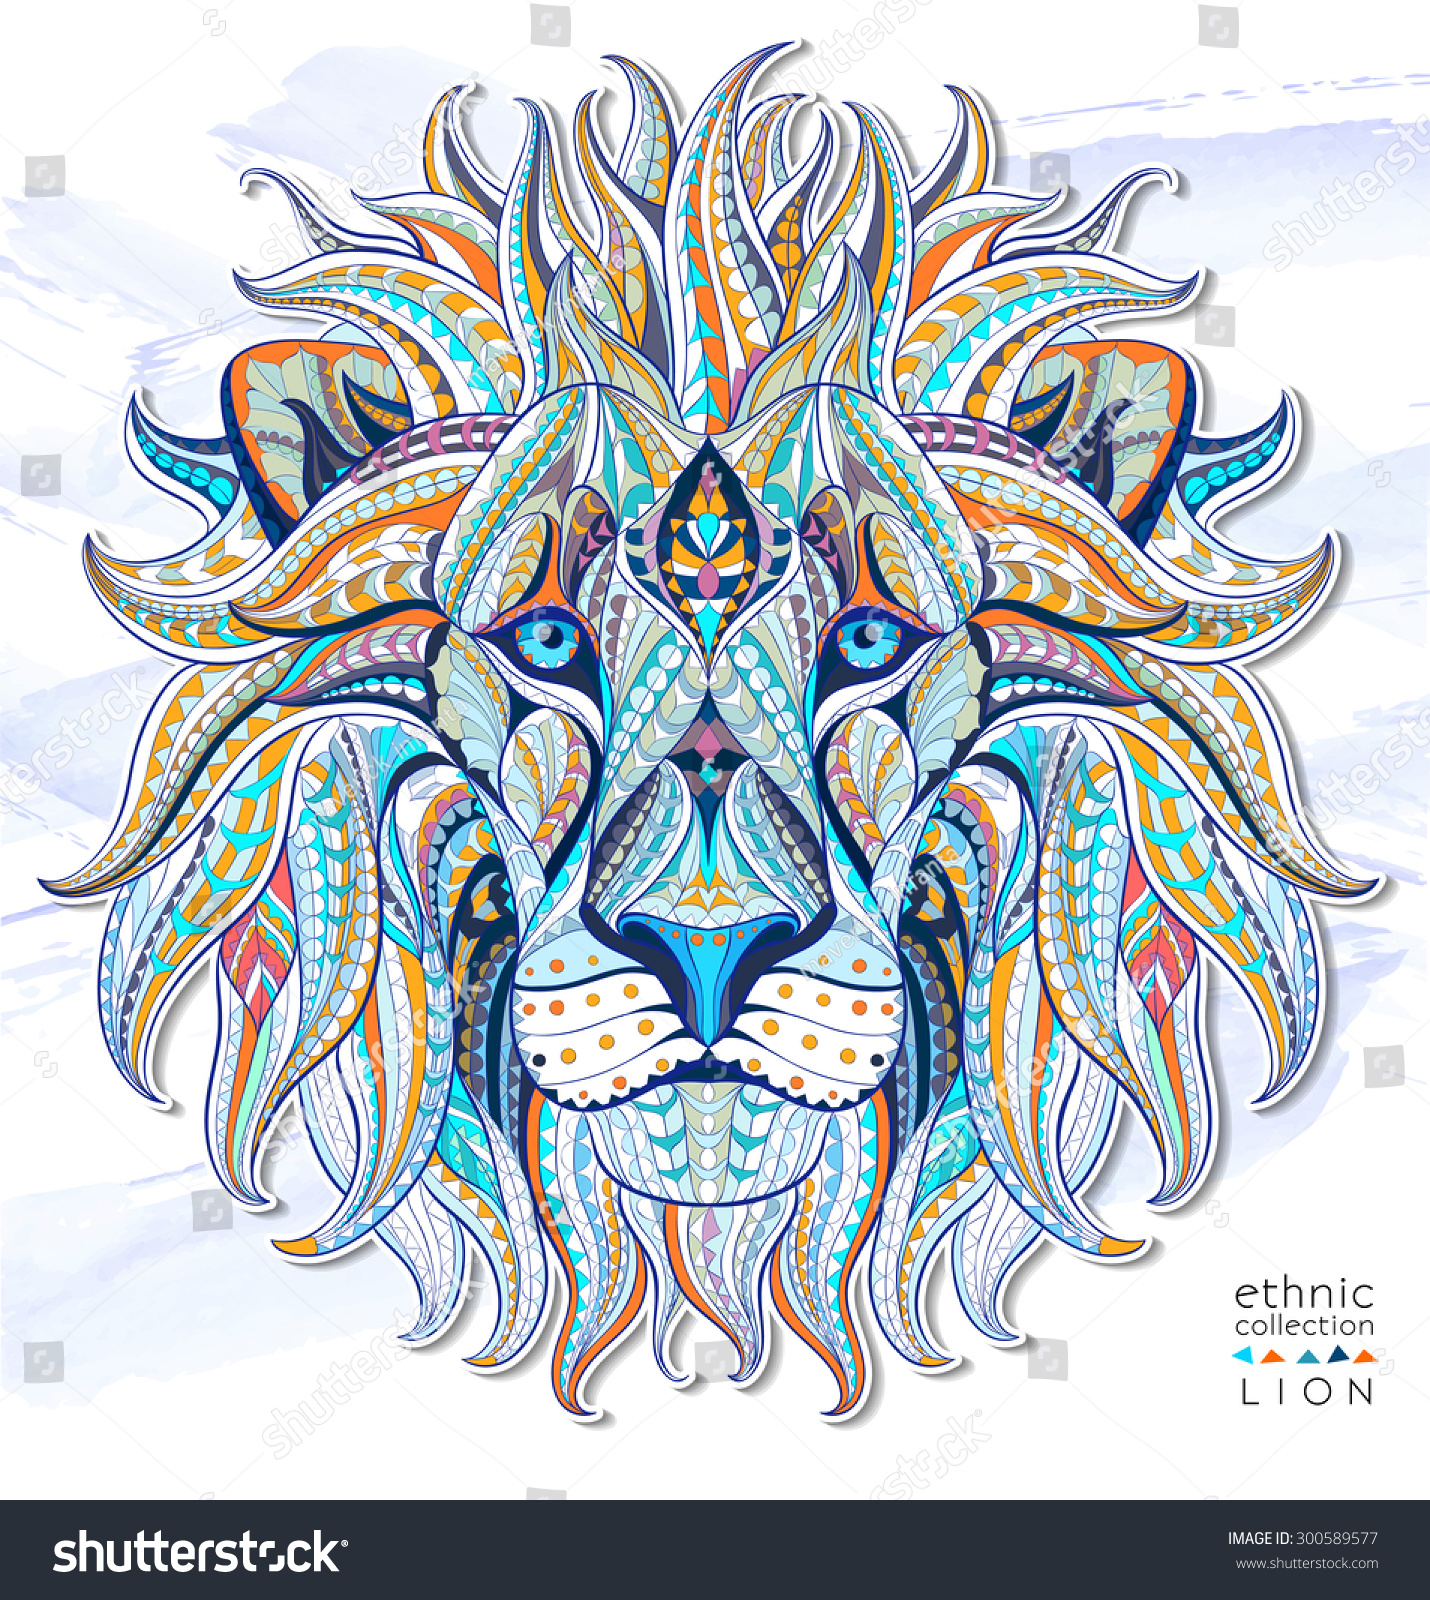 Tattoo Designs Background: Patterned Head Of The Lion On The Grunge Background